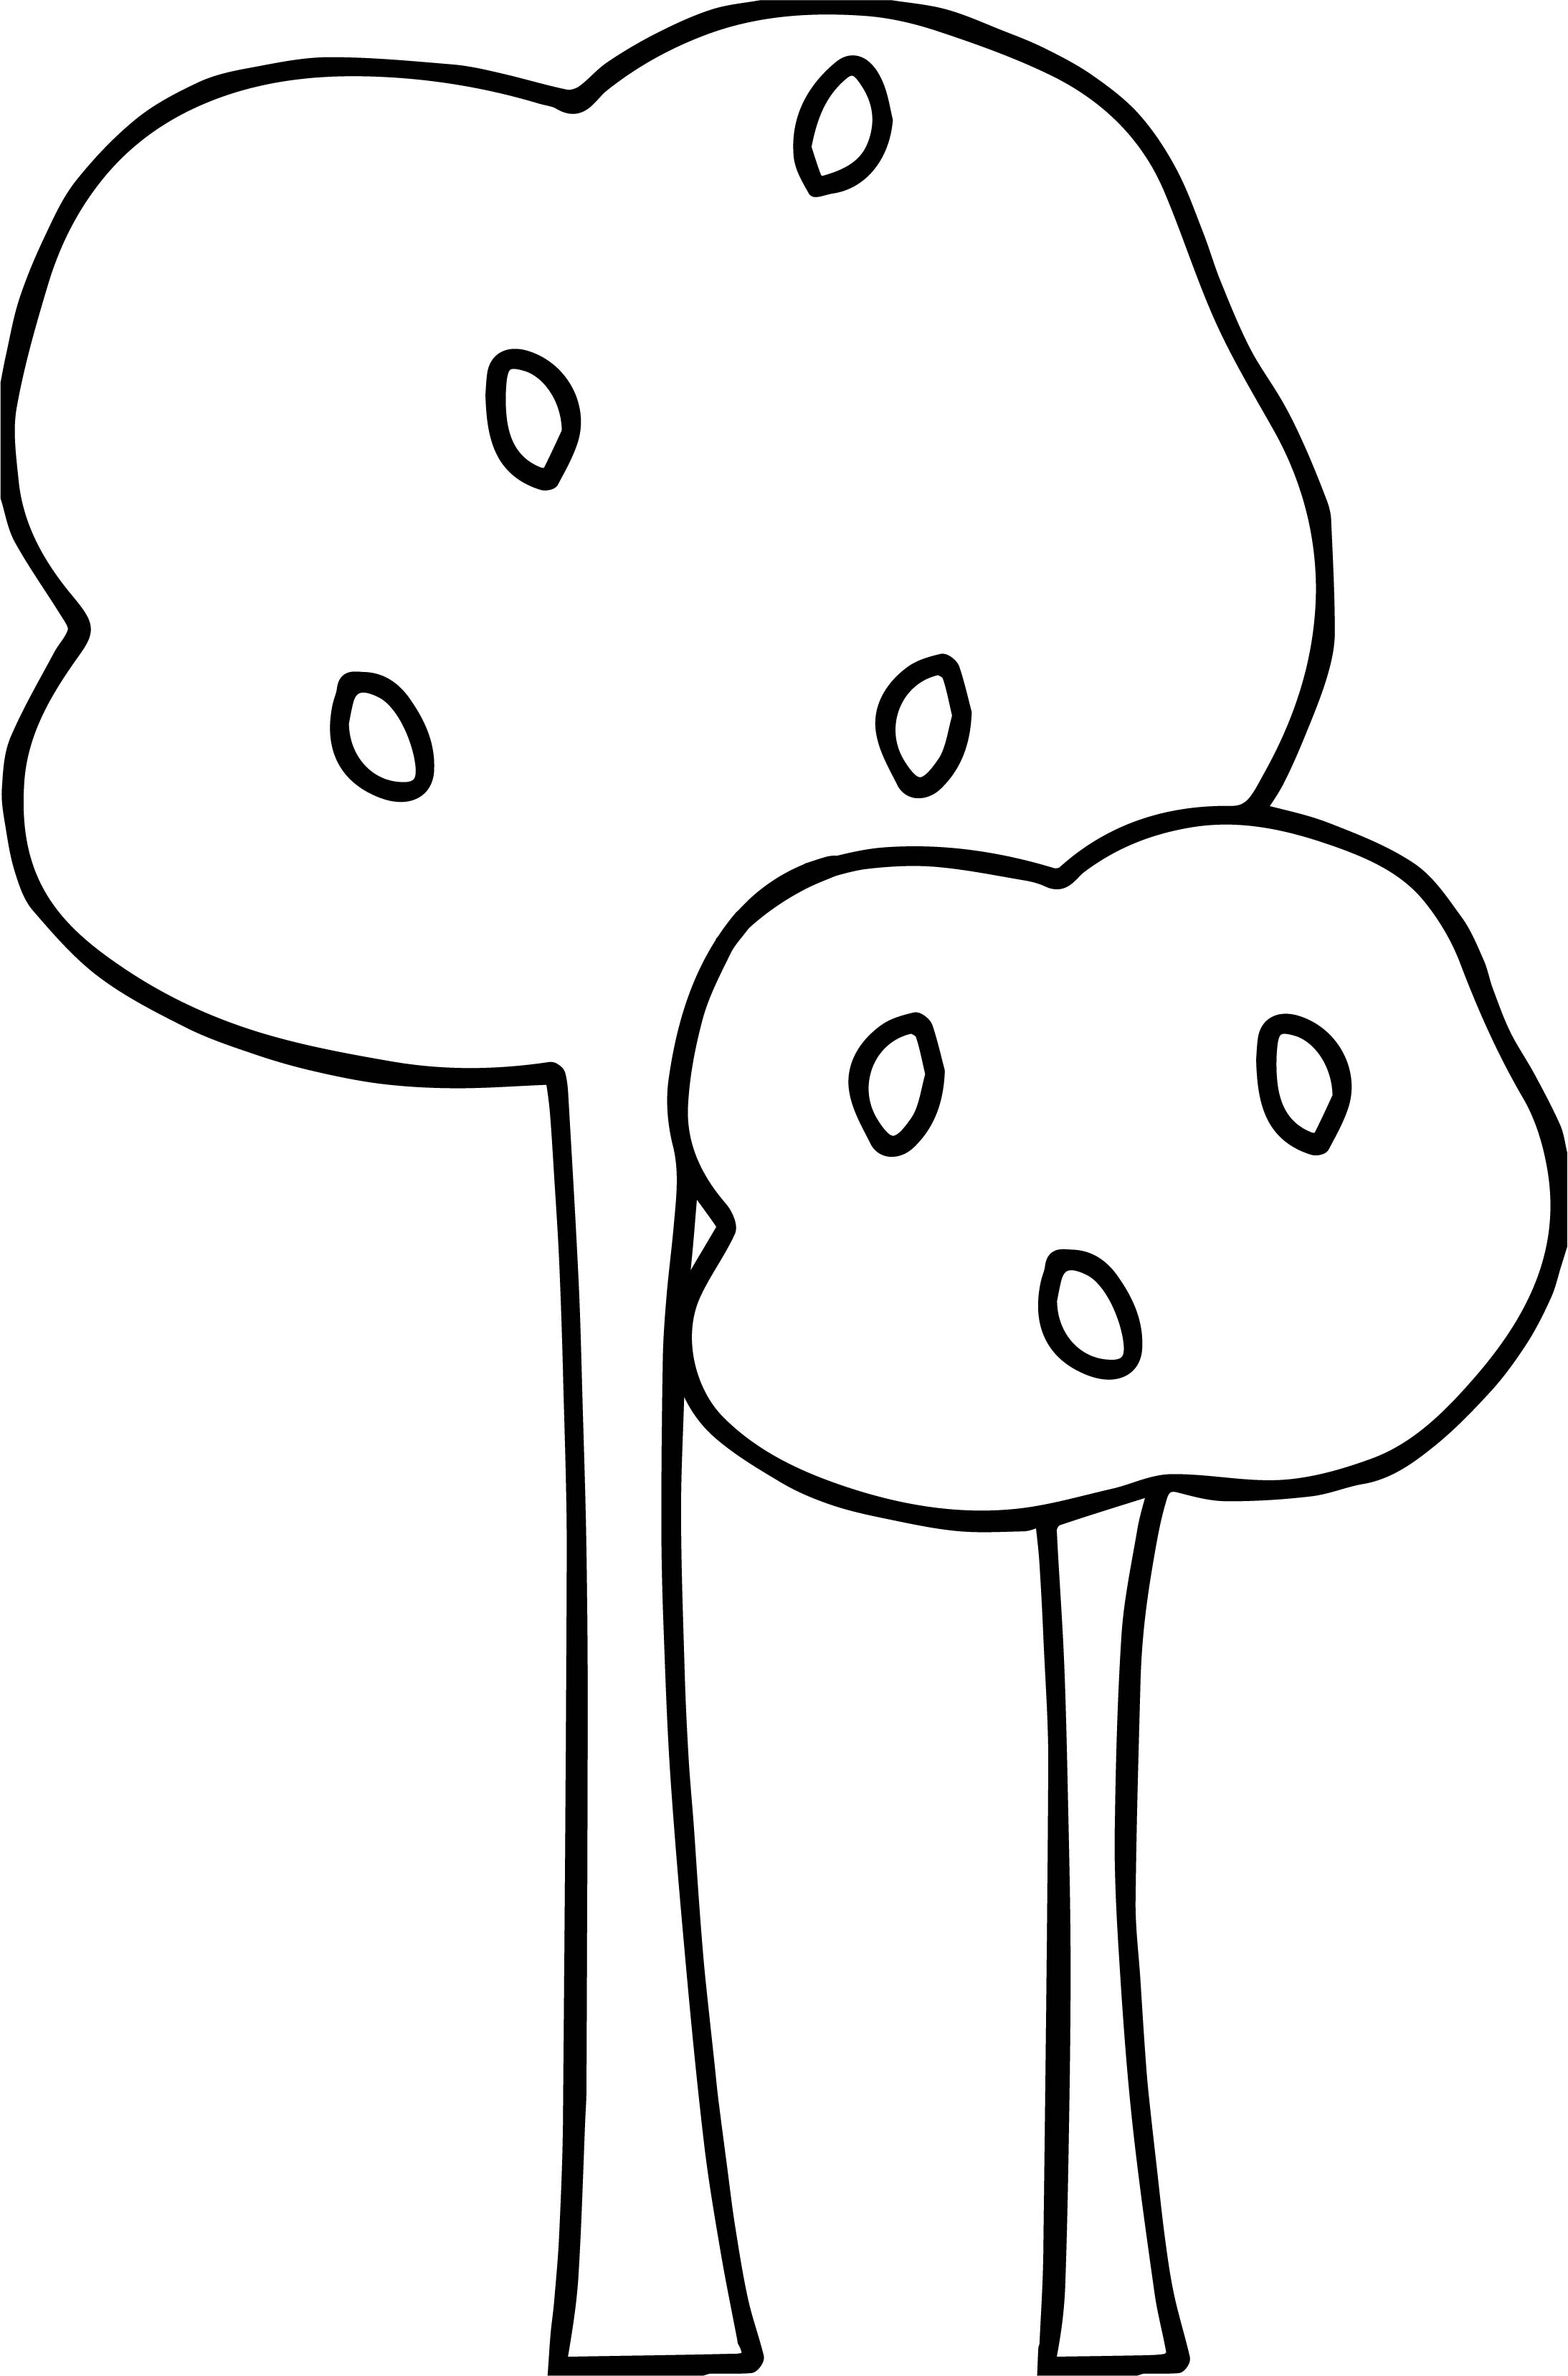 Autumn Small And Tall Tree Coloring Page Wecoloringpage